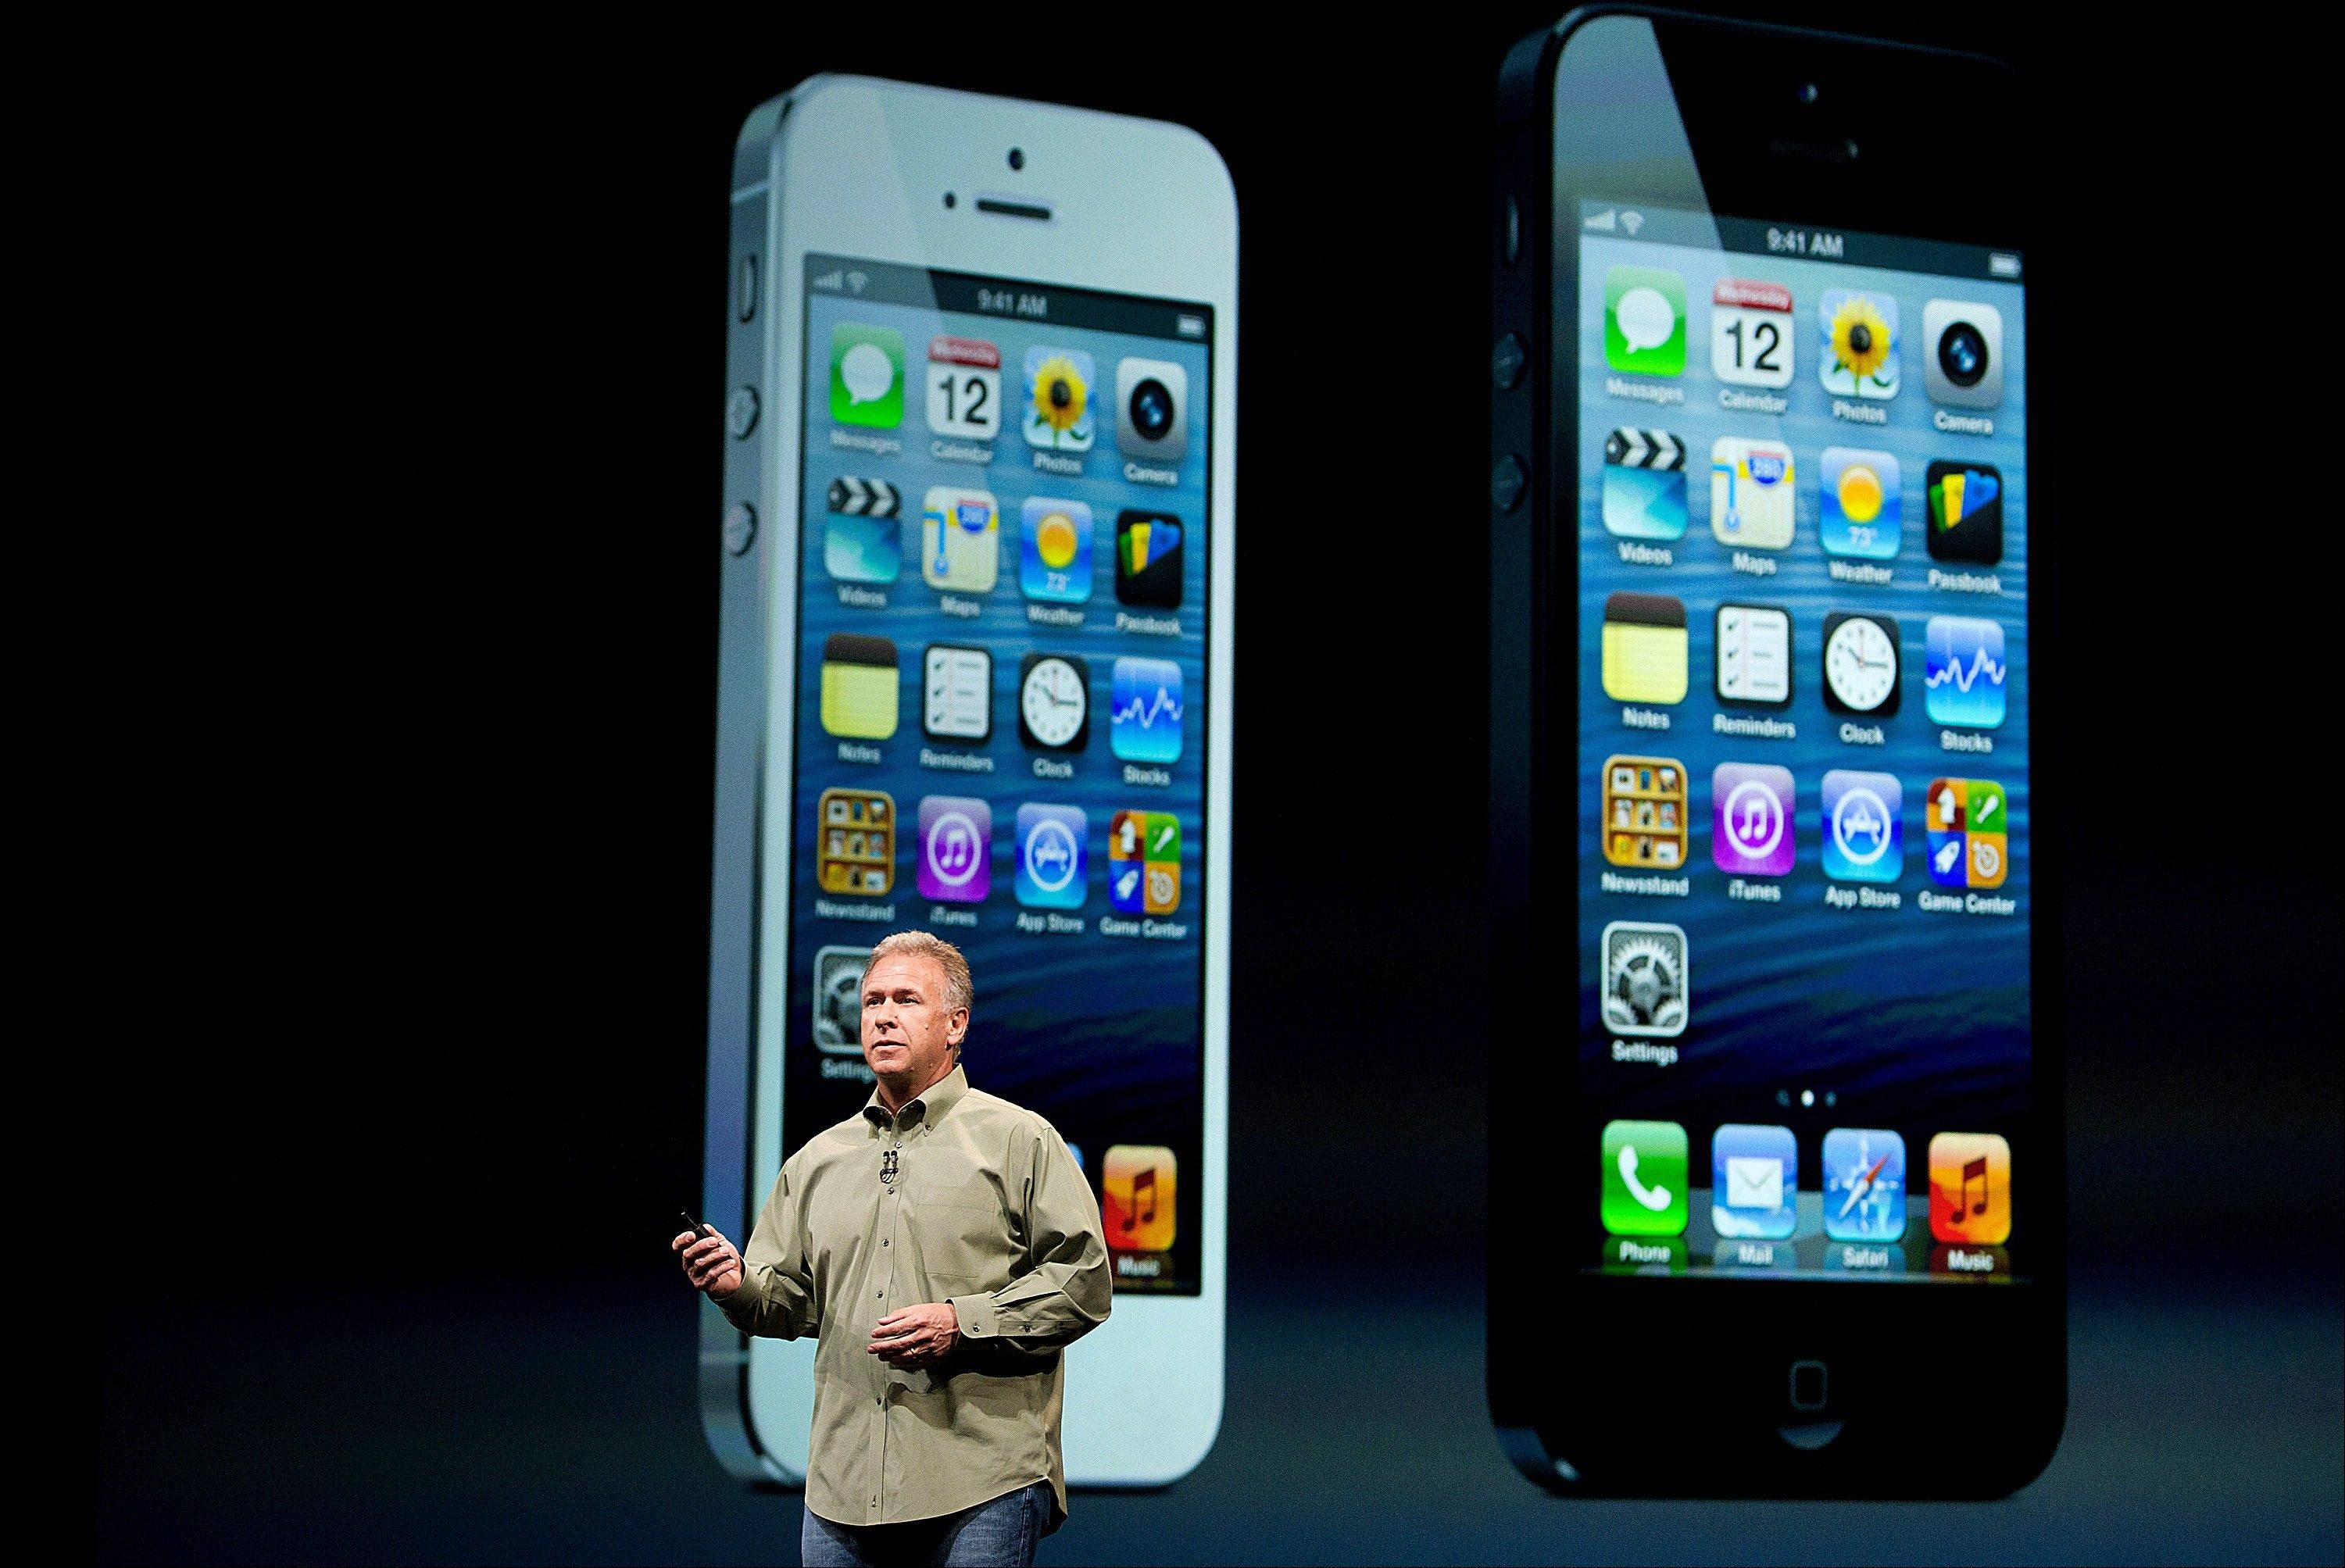 Philip Schiller, senior vice president of worldwide marketing at Apple Inc., speaks Wednesday during an event in San Francisco. Apple Inc. unveiled the iPhone 5 in an overhaul aimed at widening its lead over Samsung Electronics Co. and Google Inc. in the $219.1 billion smartphone market.